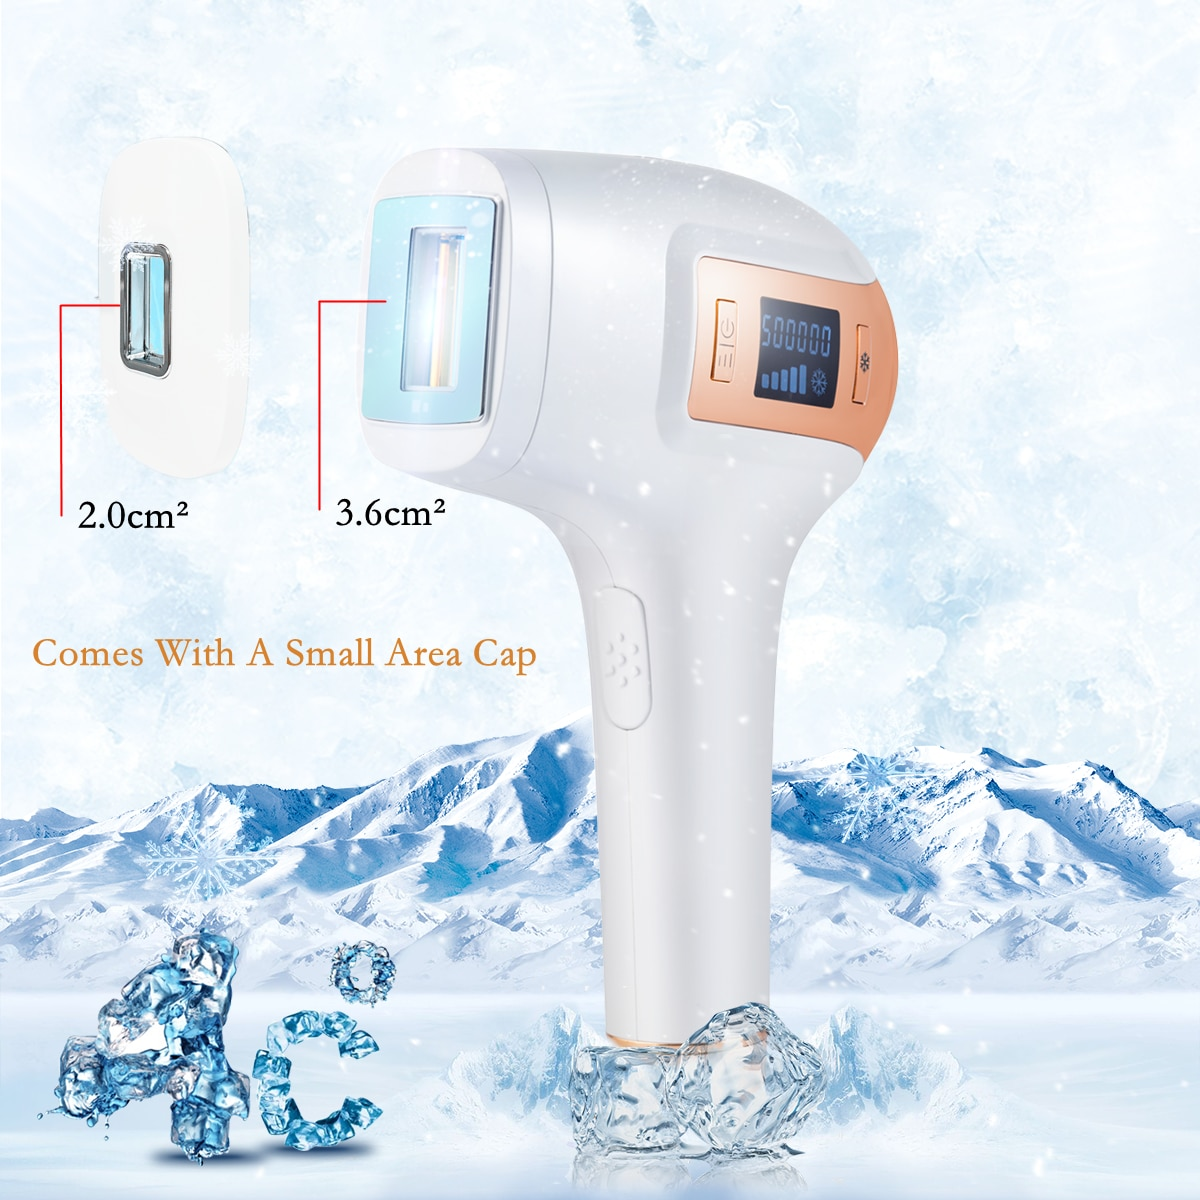 Uaike  Epilator 500,000 Flashes Permanent IPL Laser Hair Removal Machine Upgrade Ice Cooling Function Facial Body Hair Remover enlarge